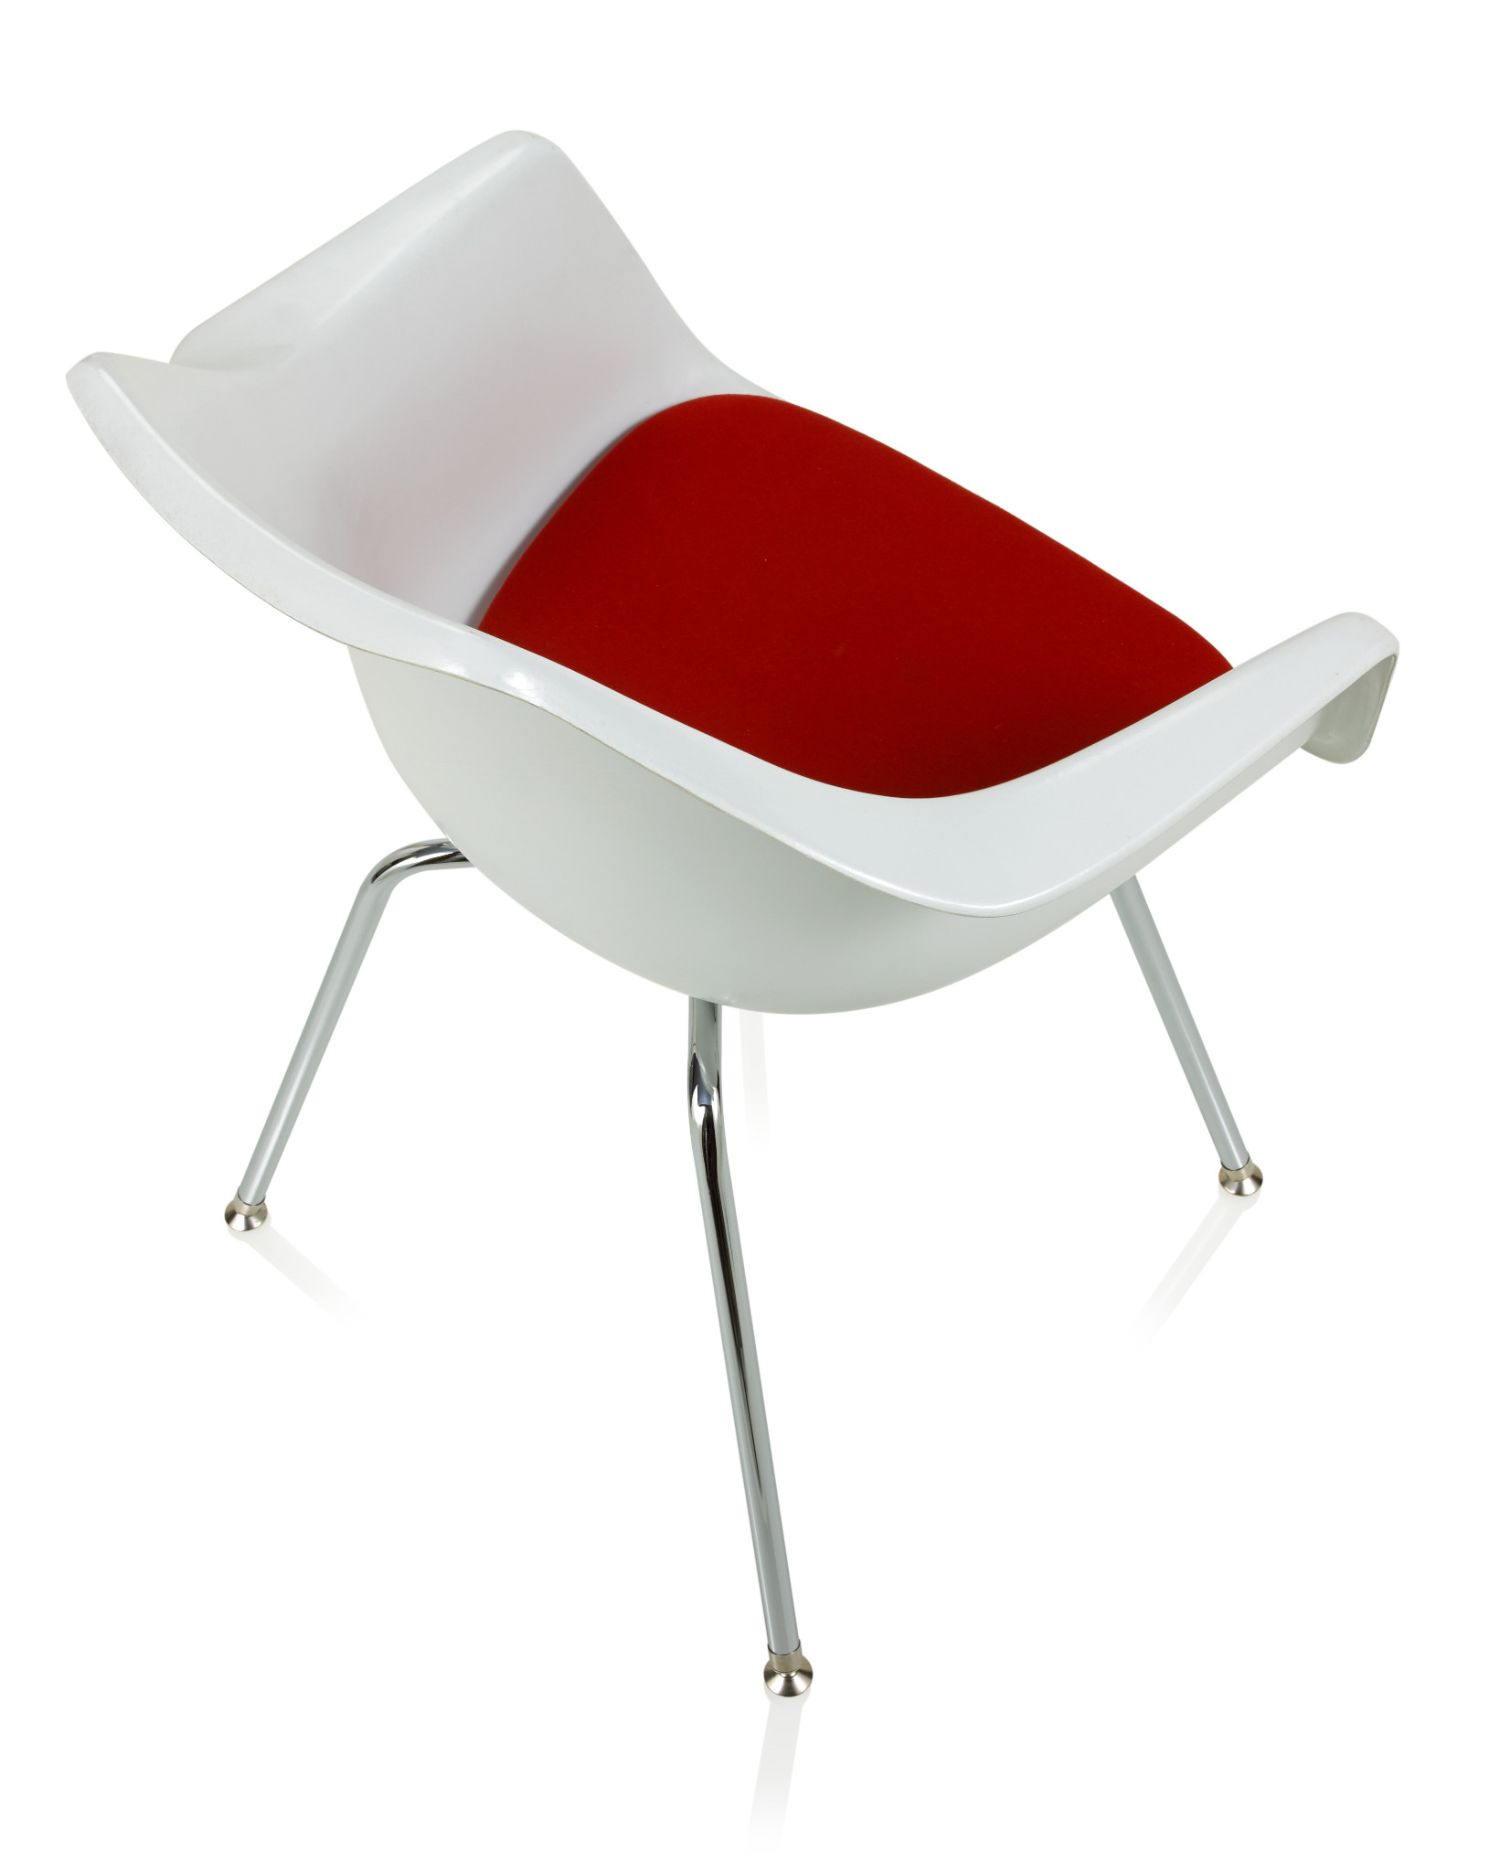 ki jubi guest chair - aerial profile